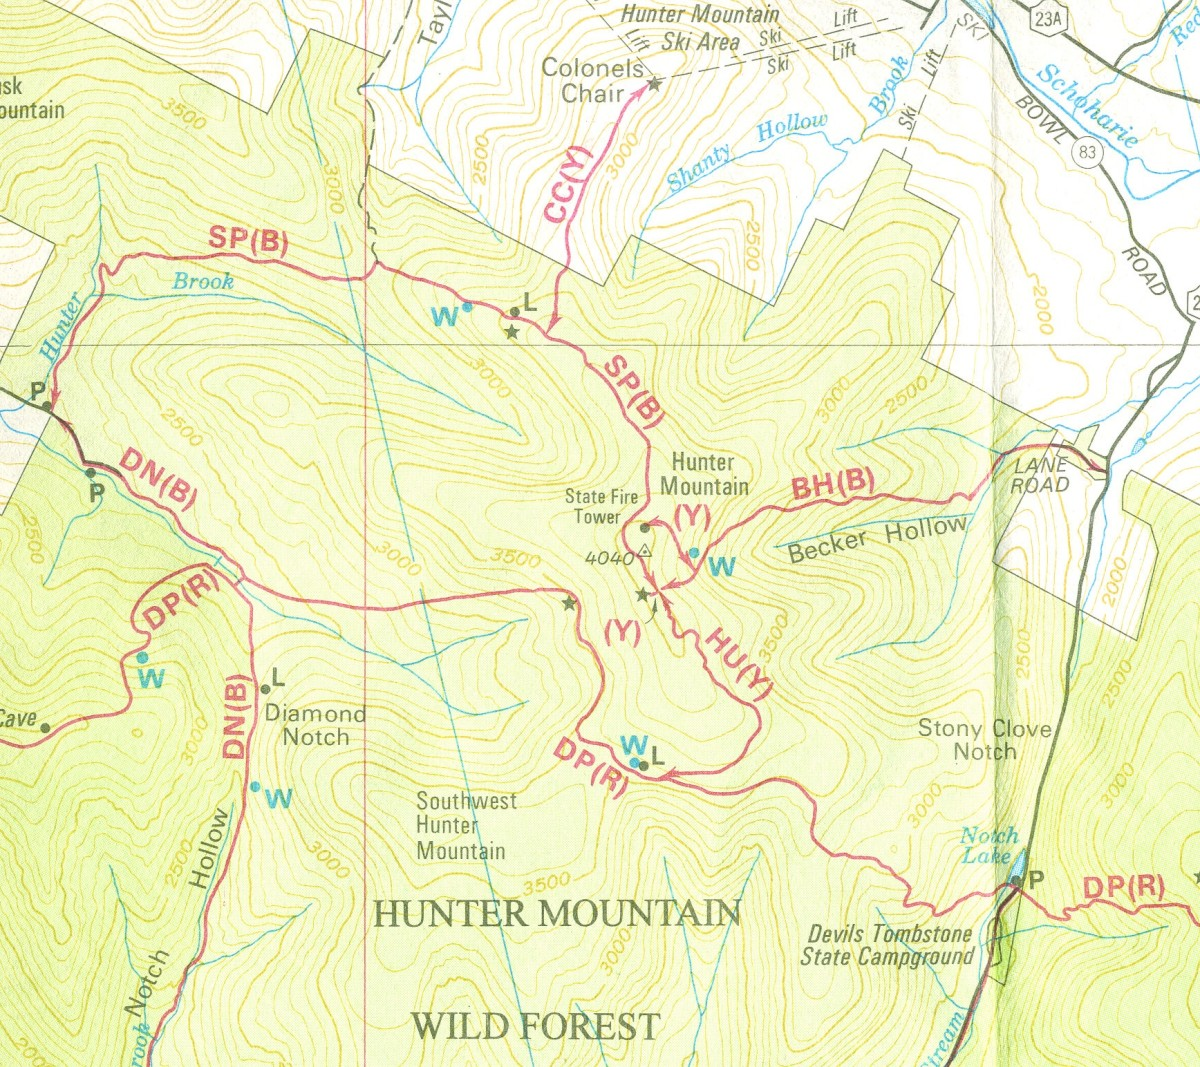 An Overview of the Trails